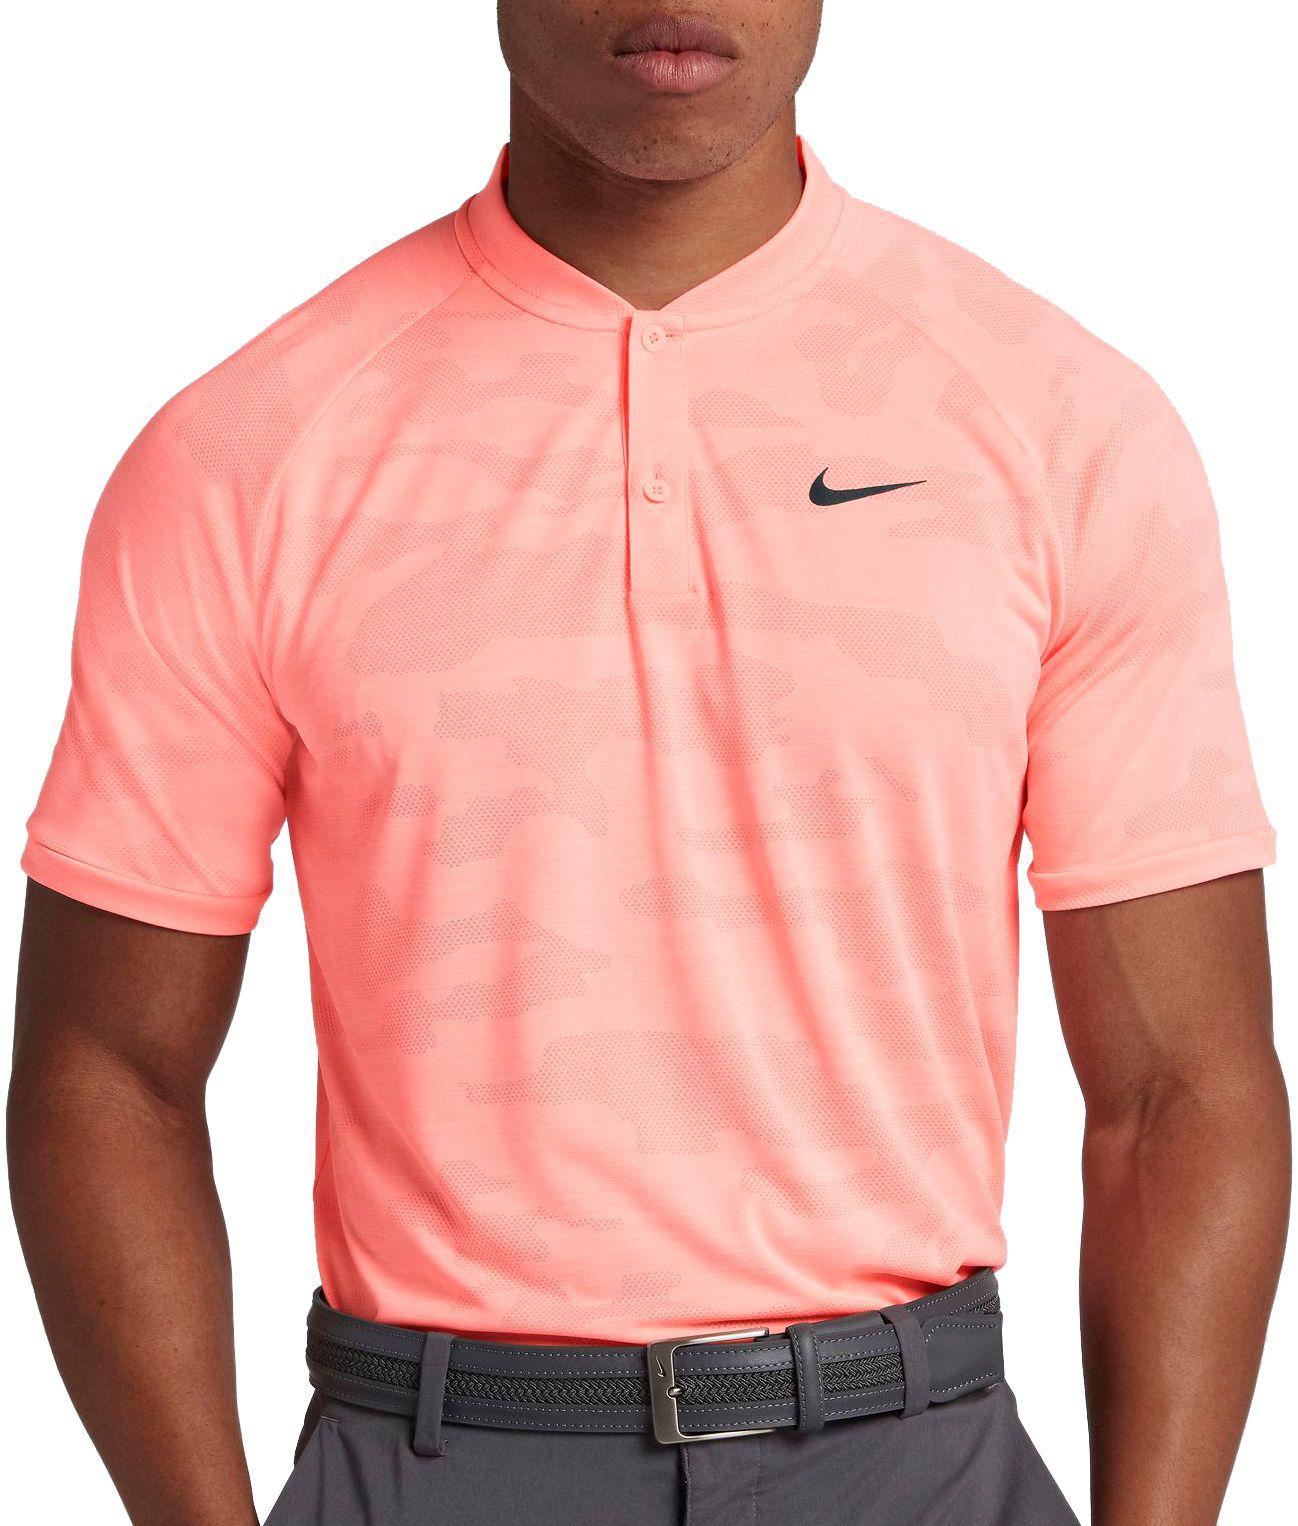 21427c1a Nike Tiger Woods Zonal Cooling Camo Golf Polo in Pink for Men - Lyst